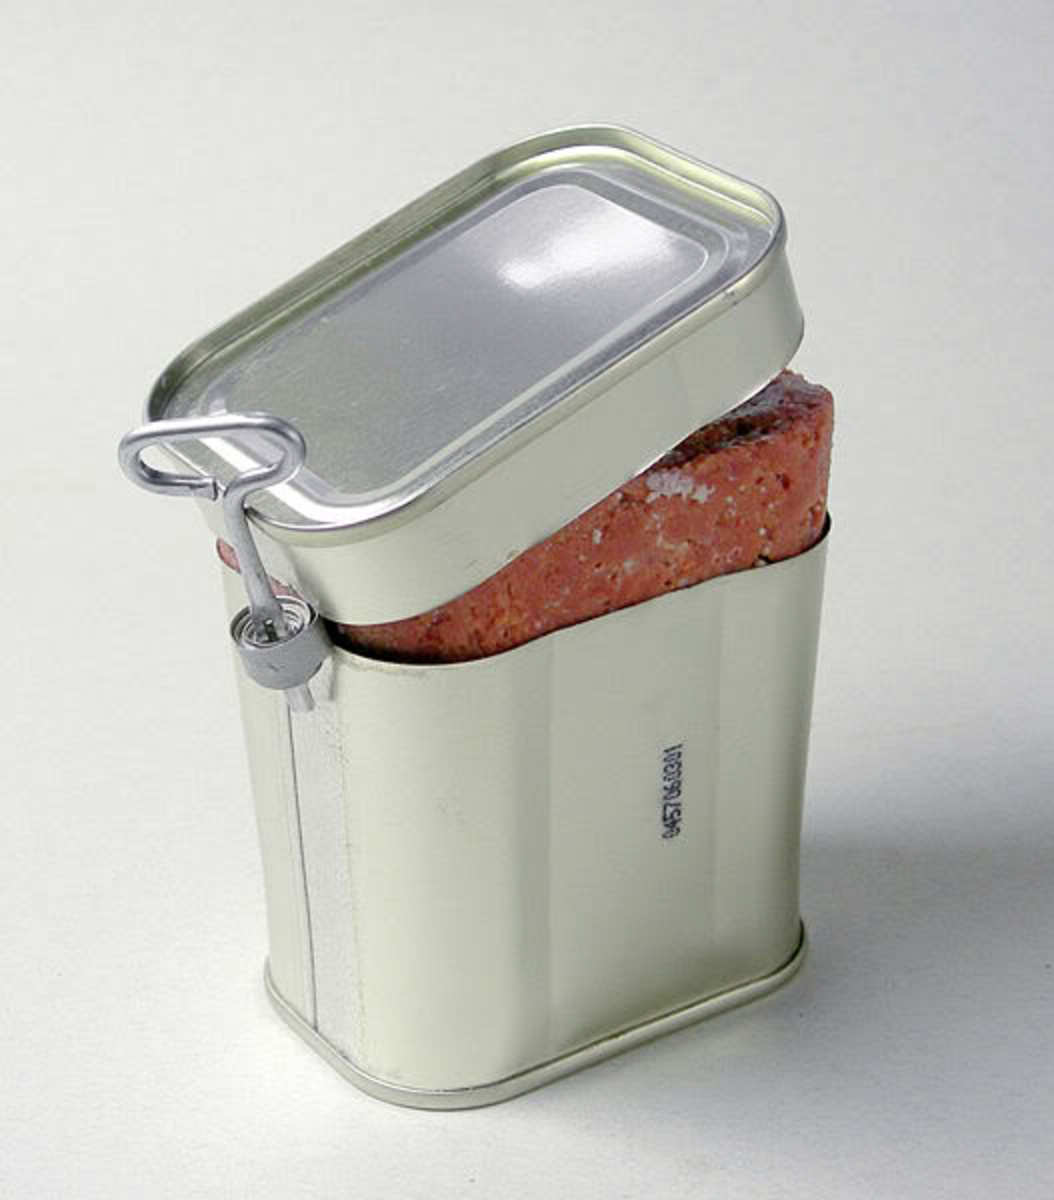 What Is Corned Beef? (and Other Facts About